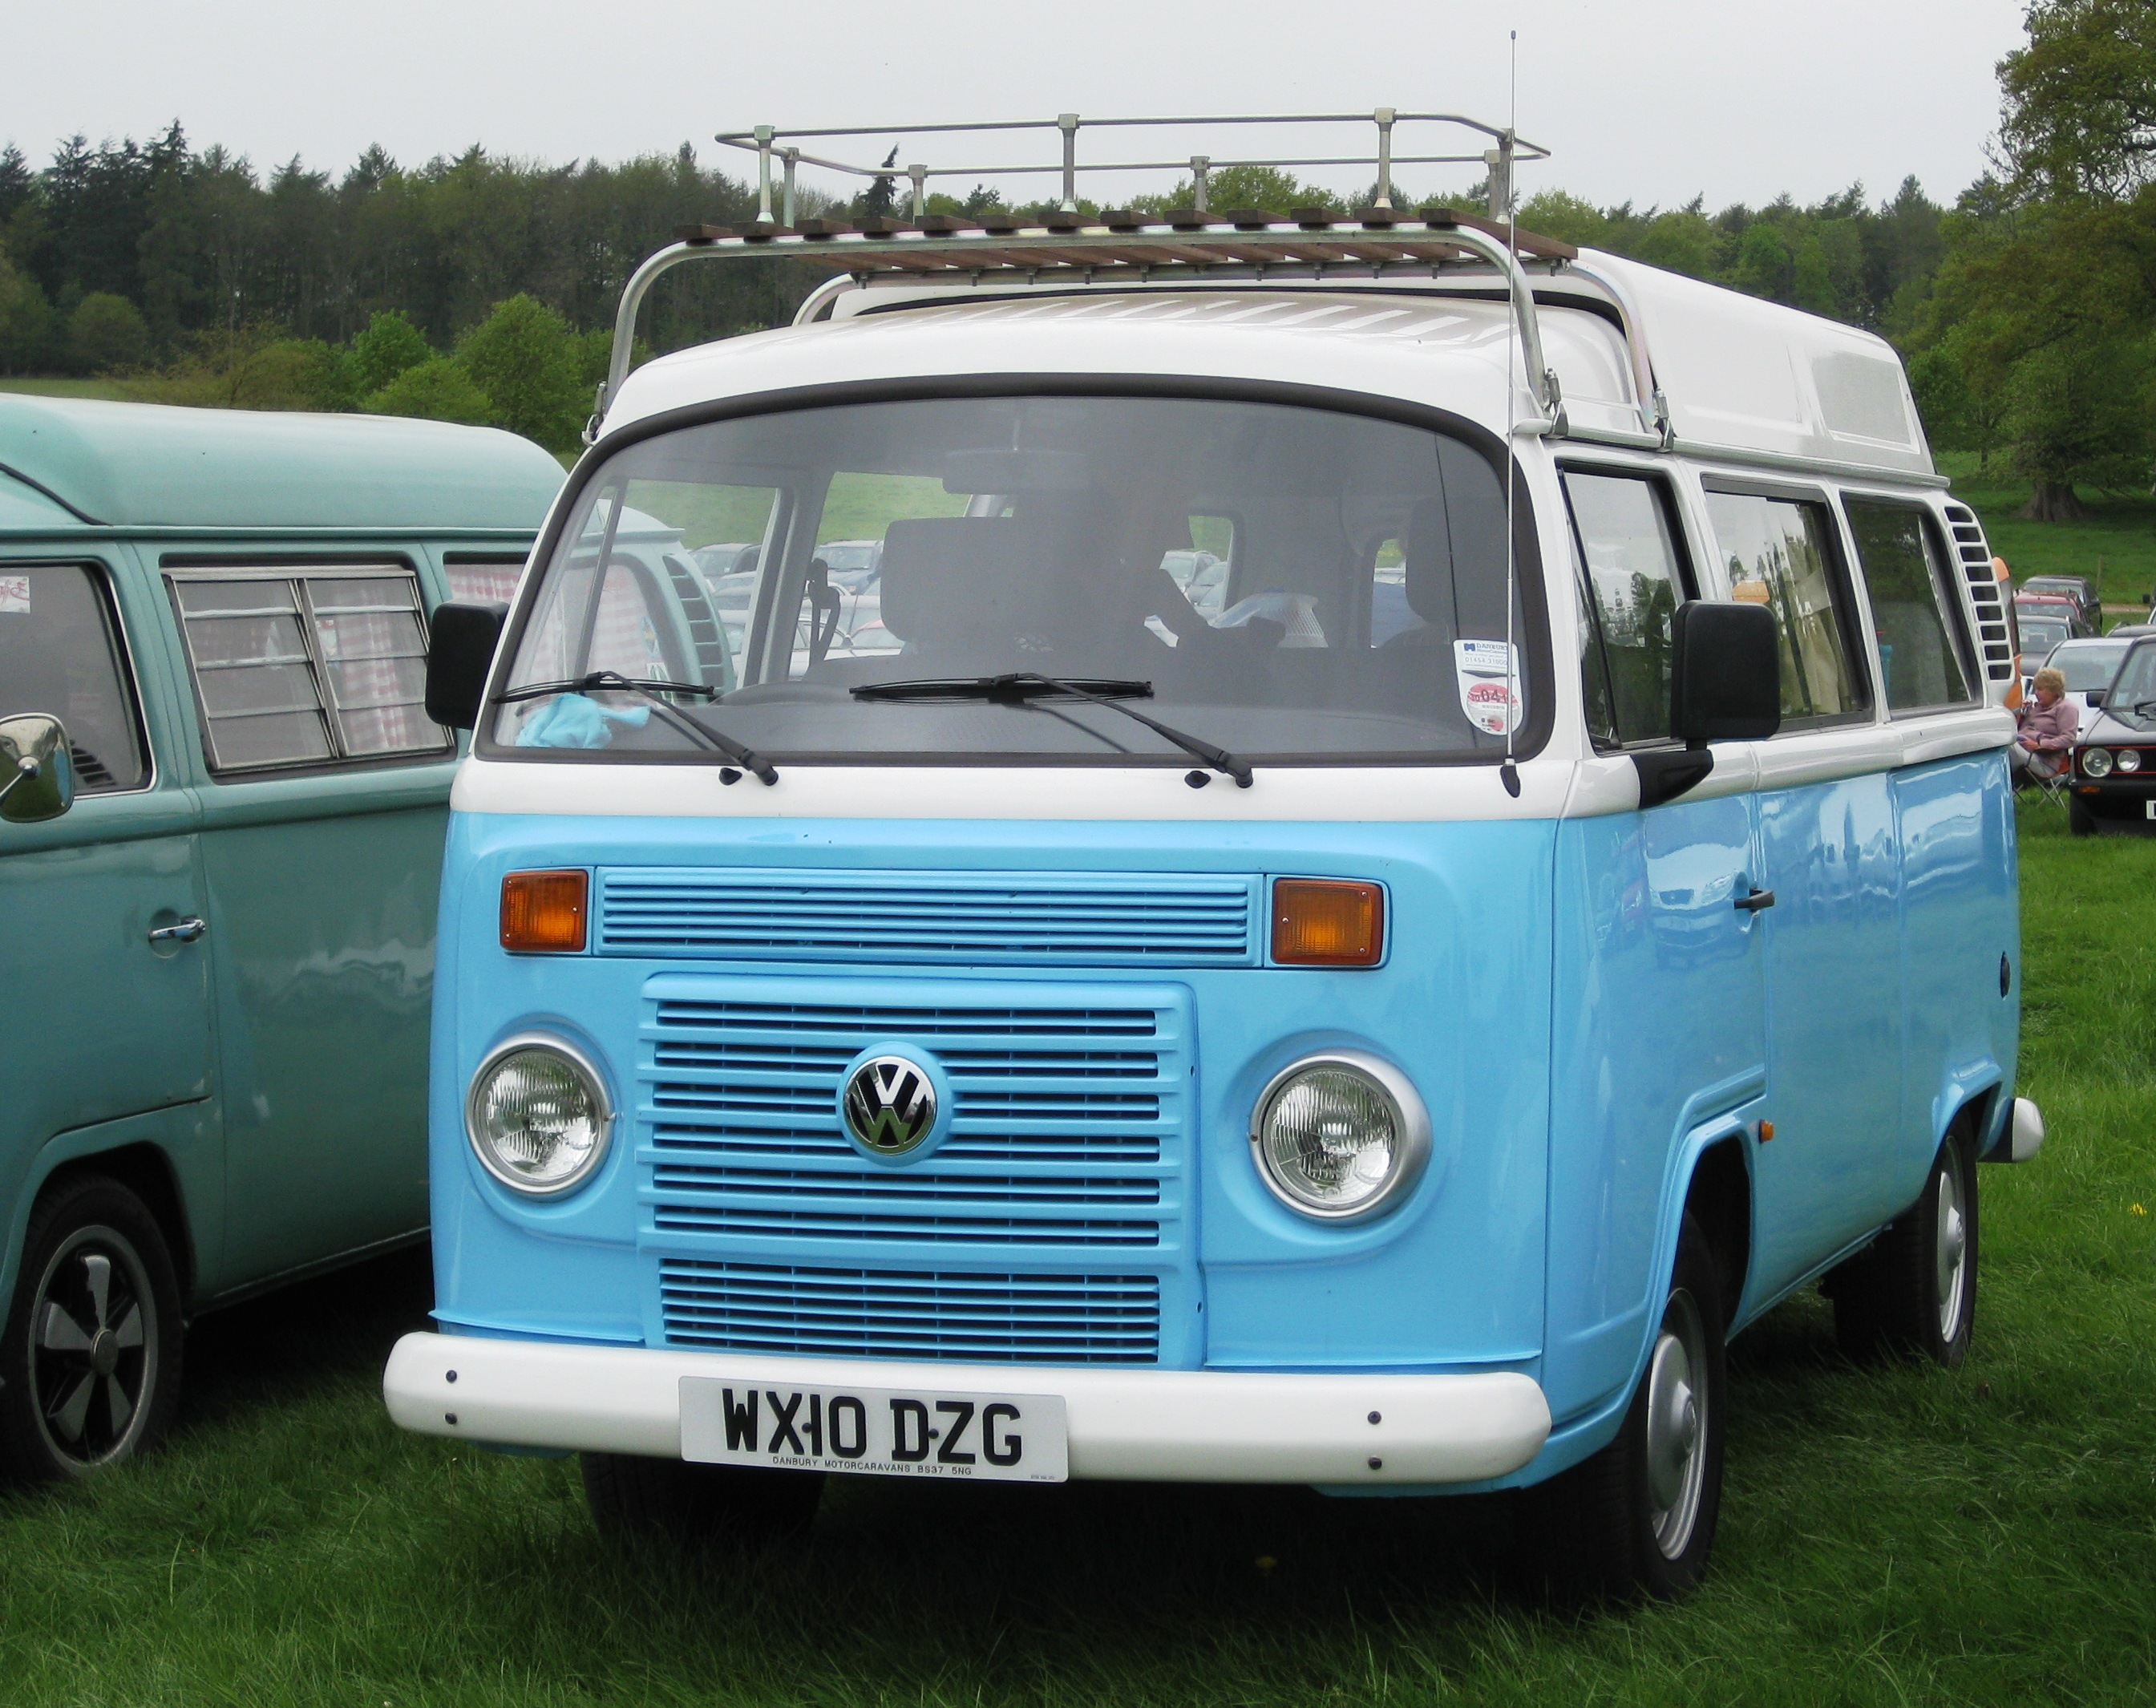 File Volkswagen Typ2 Based Kombi In 2010 From Brazil With Watercooled Motor First Registered May 2010 1390cc Jpg Wikimedia Commons